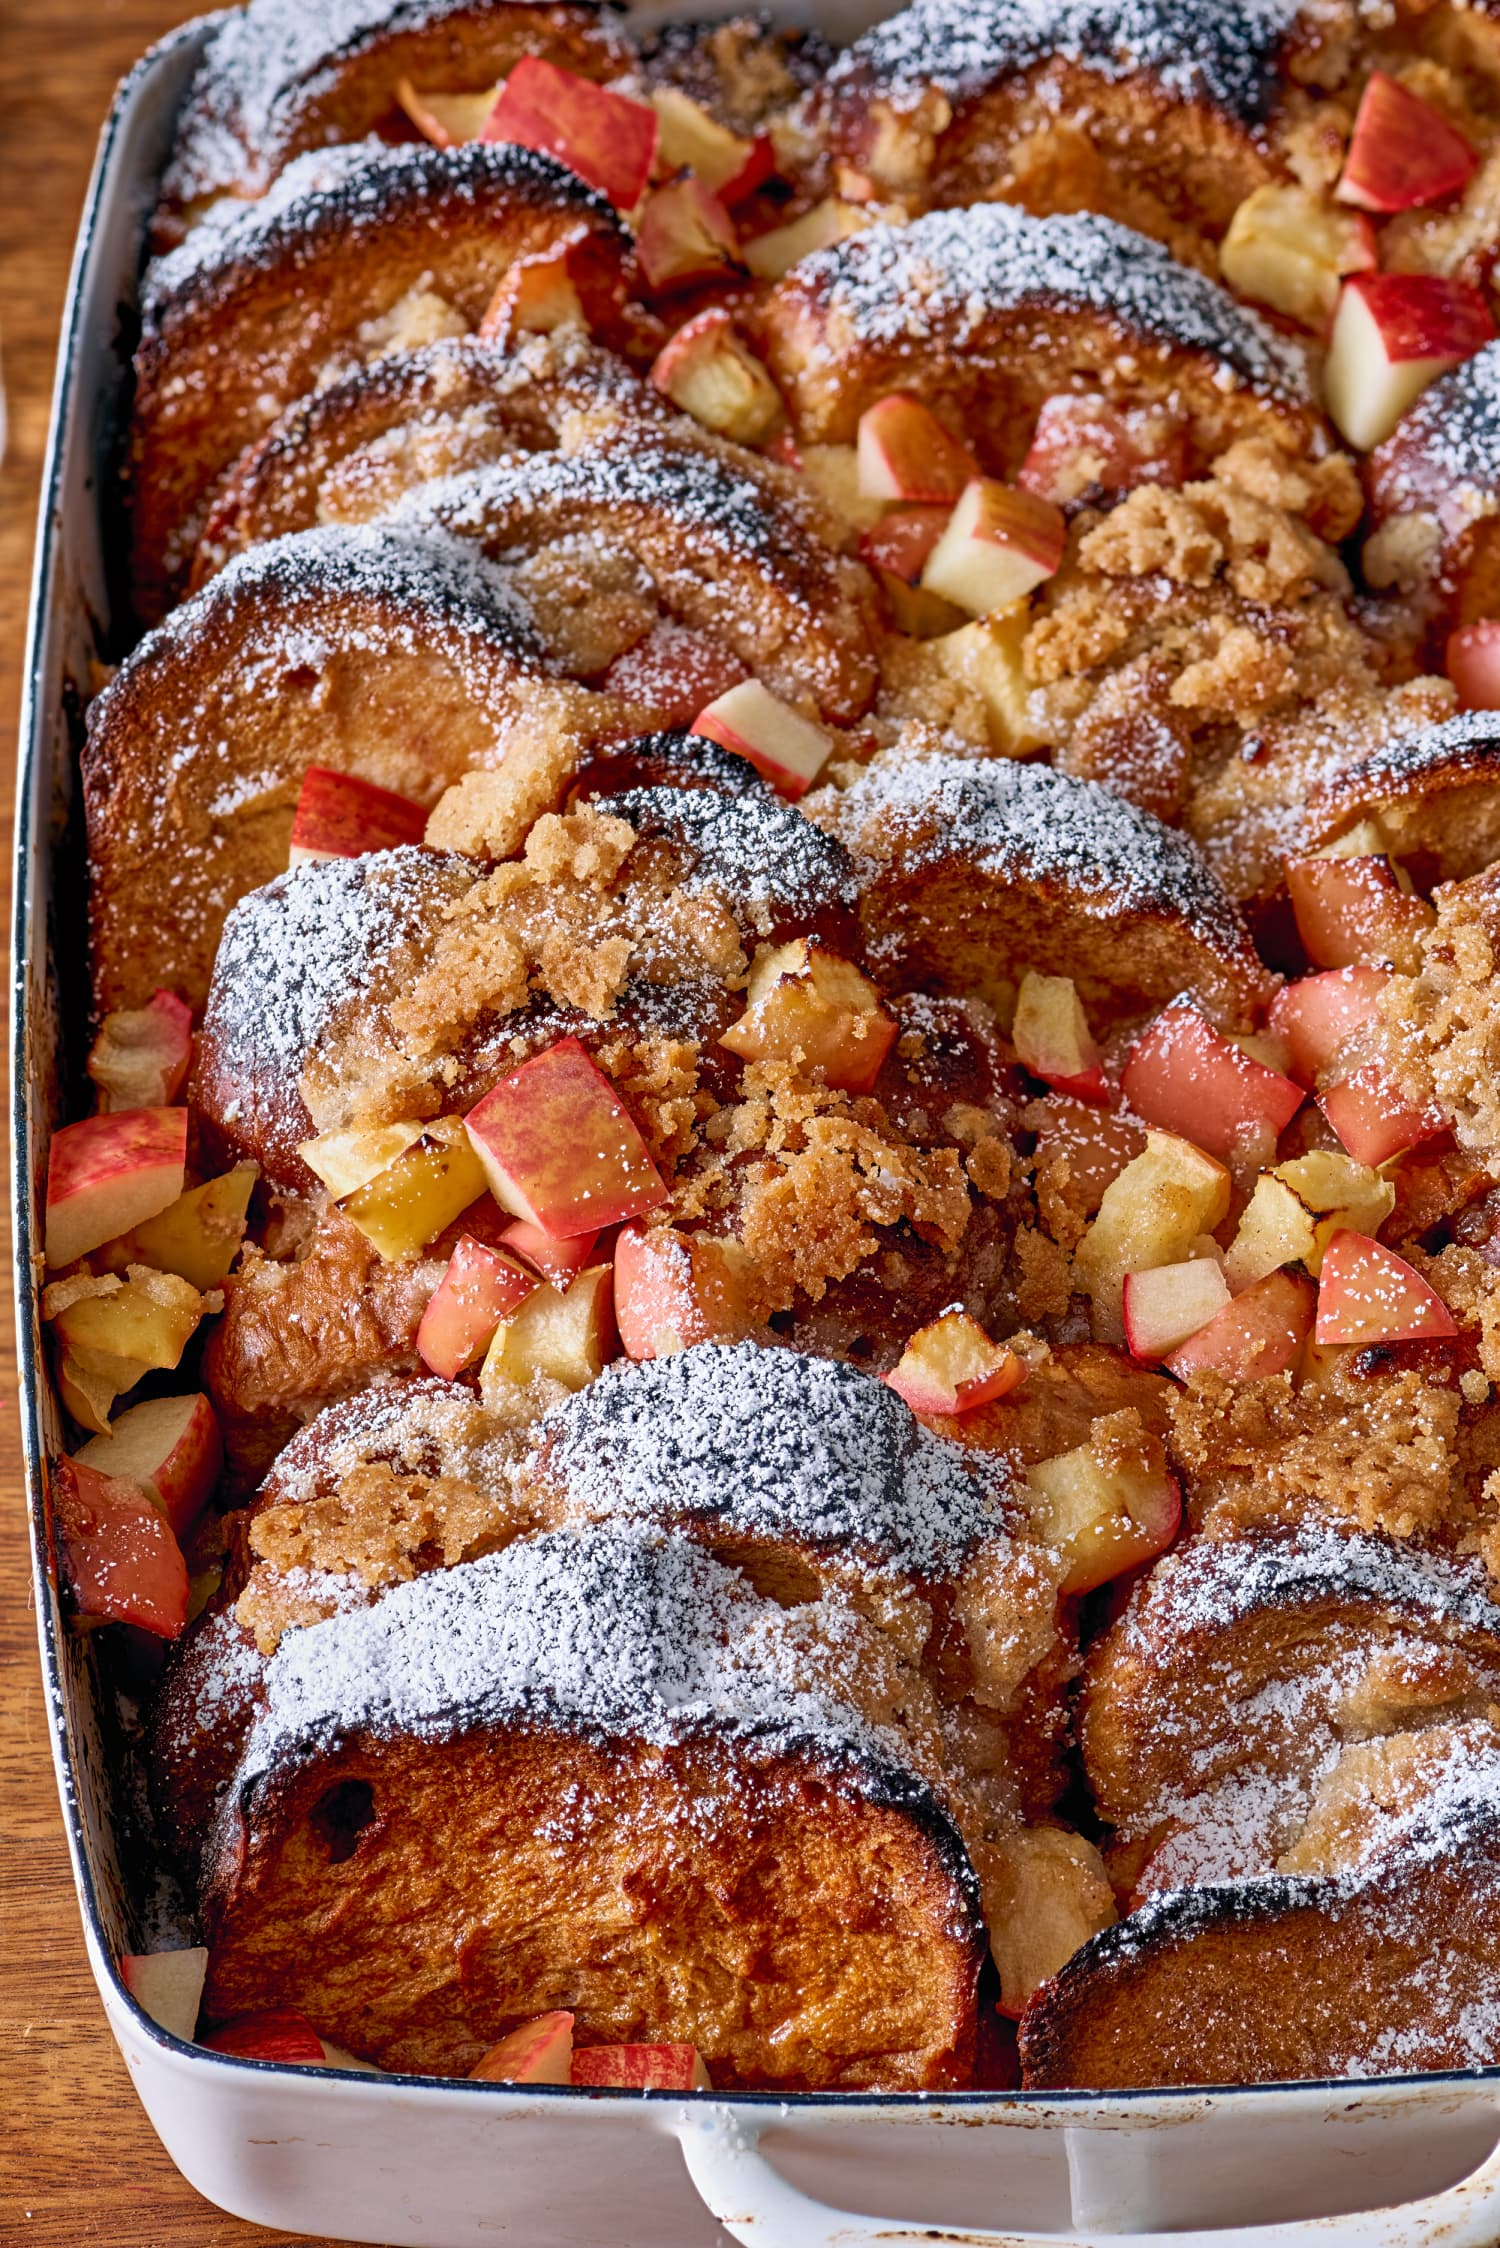 Recipe: Apple-Cinnamon French Toast Casserole